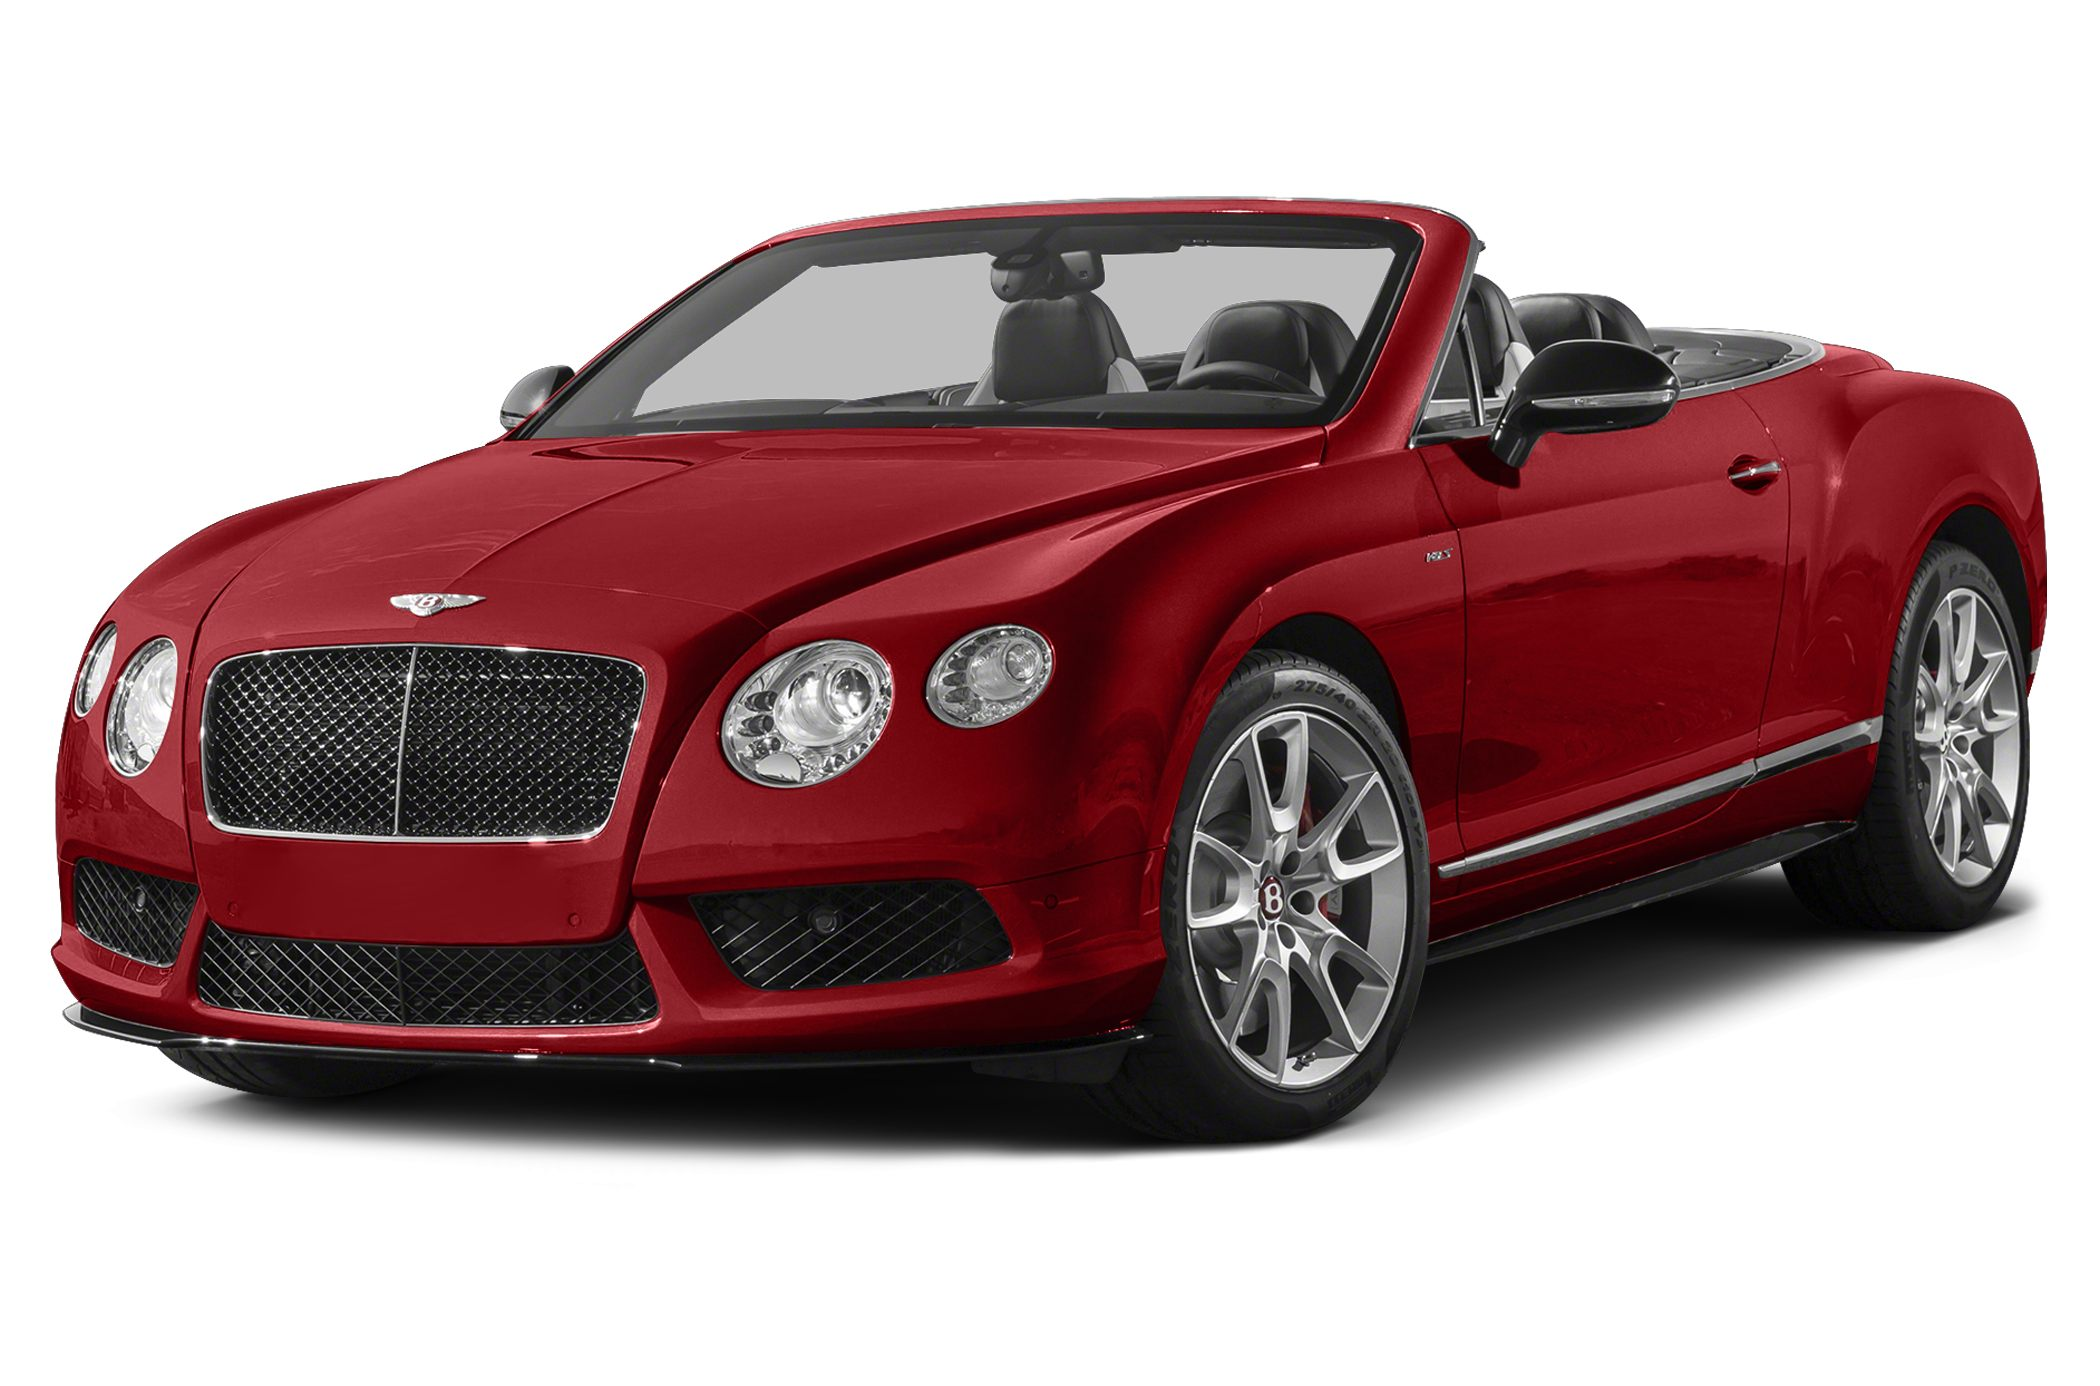 2015 Bentley Continental GTC V8 S Convertible for sale in Miami for $253,805 with 29 miles